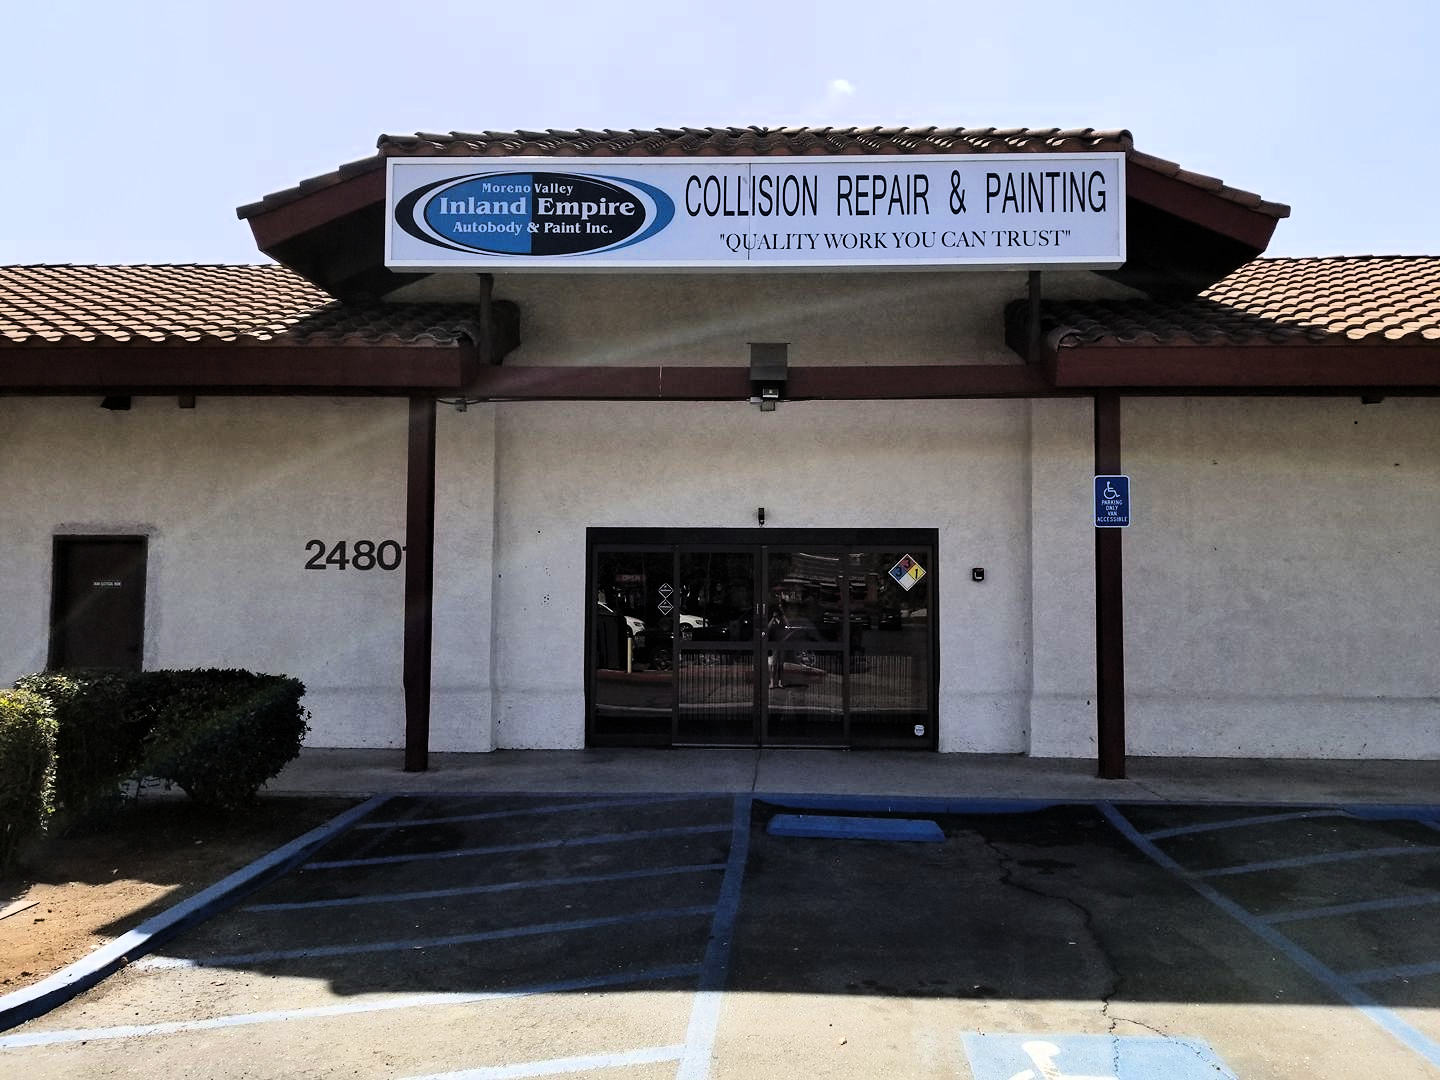 Inland empire autobody and paint inc coupons near me in for Heritage motors casa grande florence